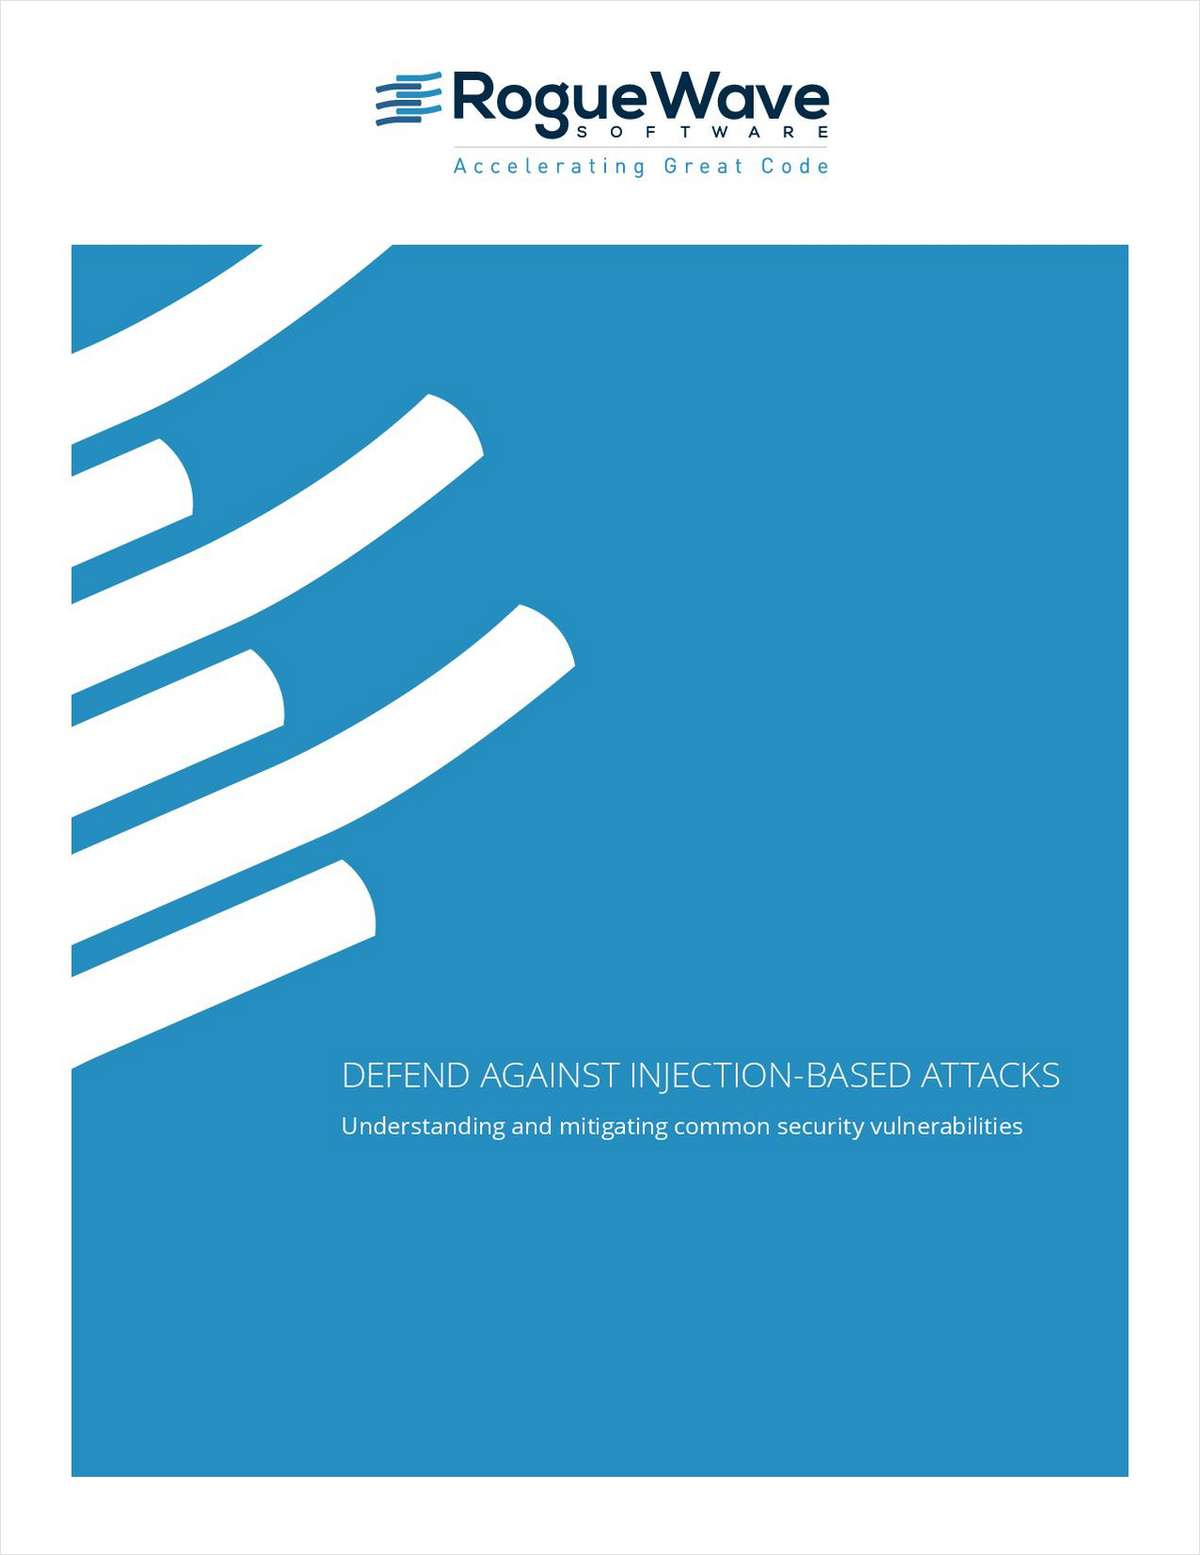 Defend Against Injection-Based Attacks